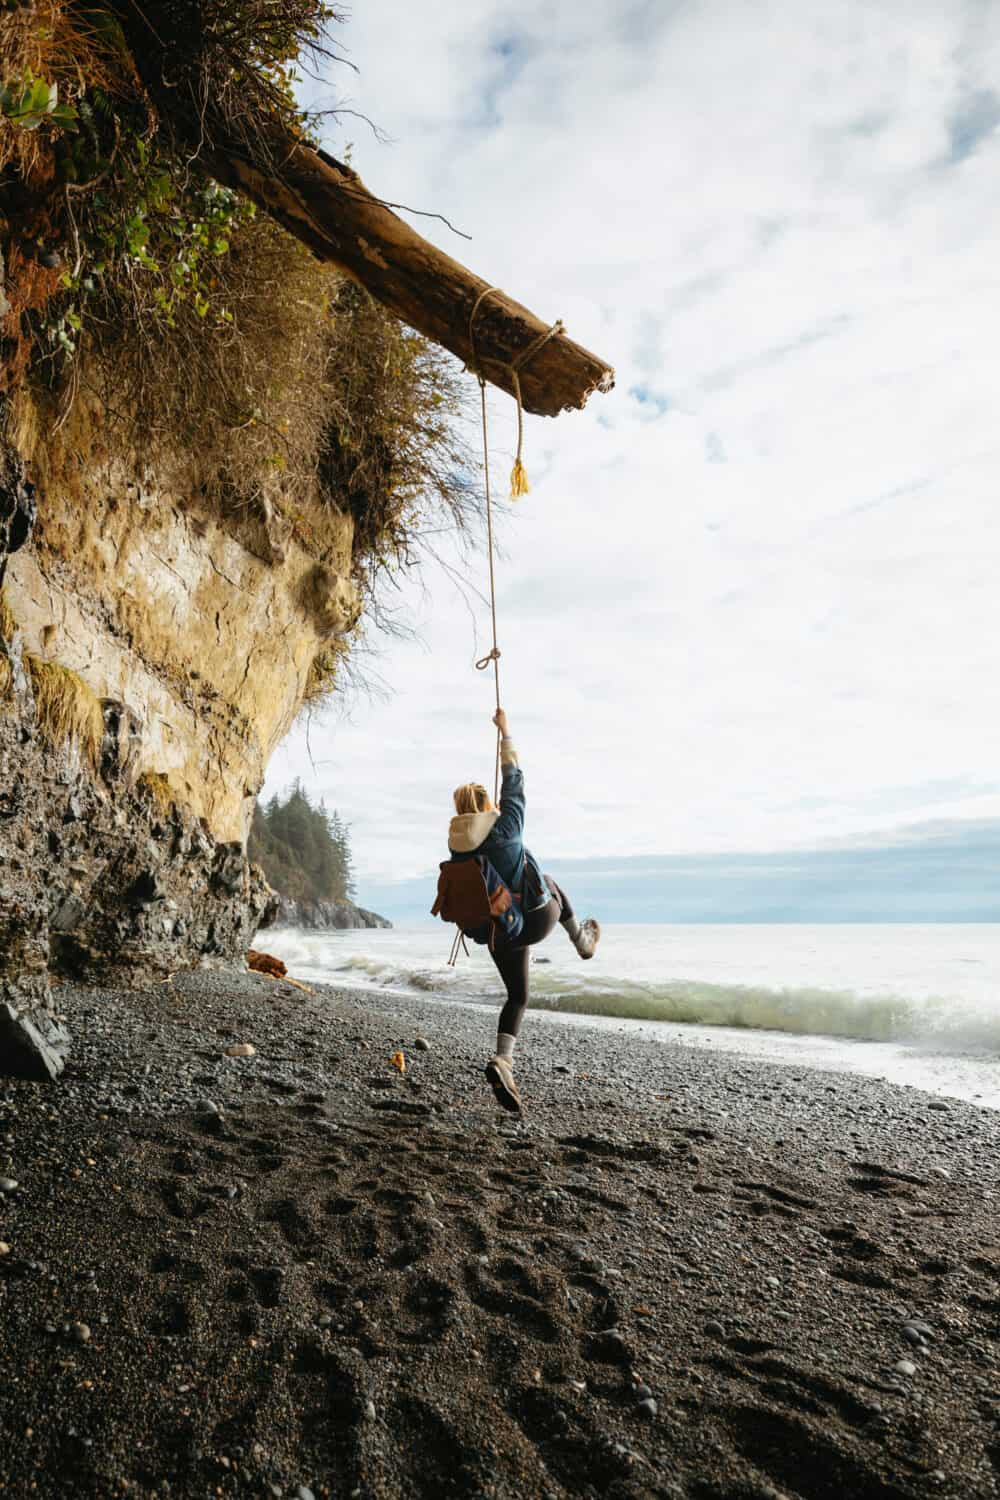 Emily Mandagie on rope swing at Mystic Beach, Vancouver Island - TheMandagies.com